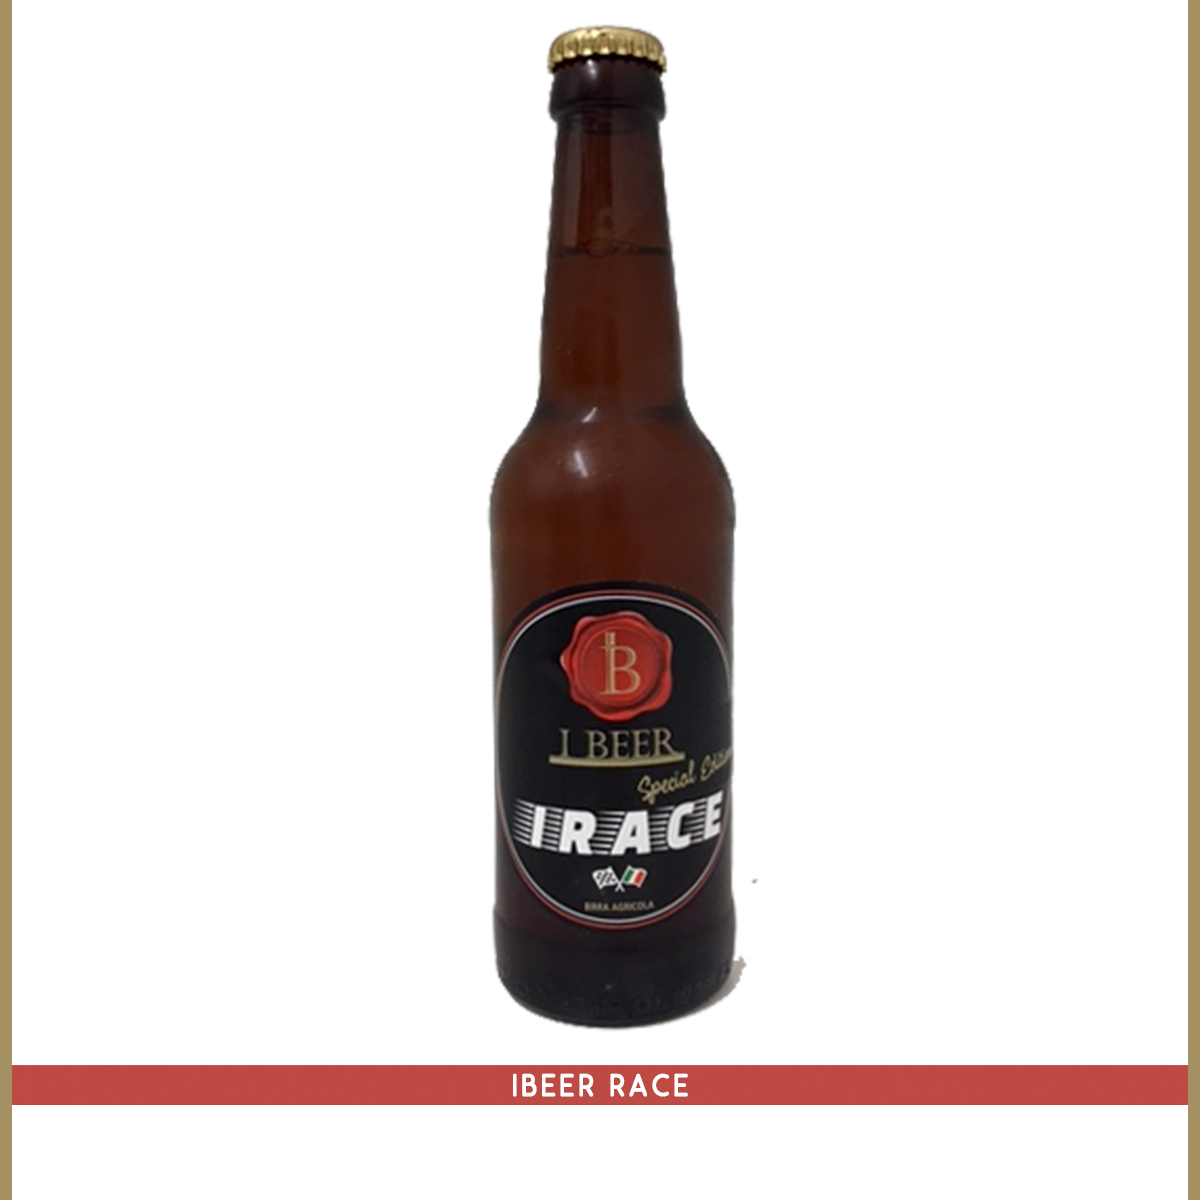 IRace - Lager